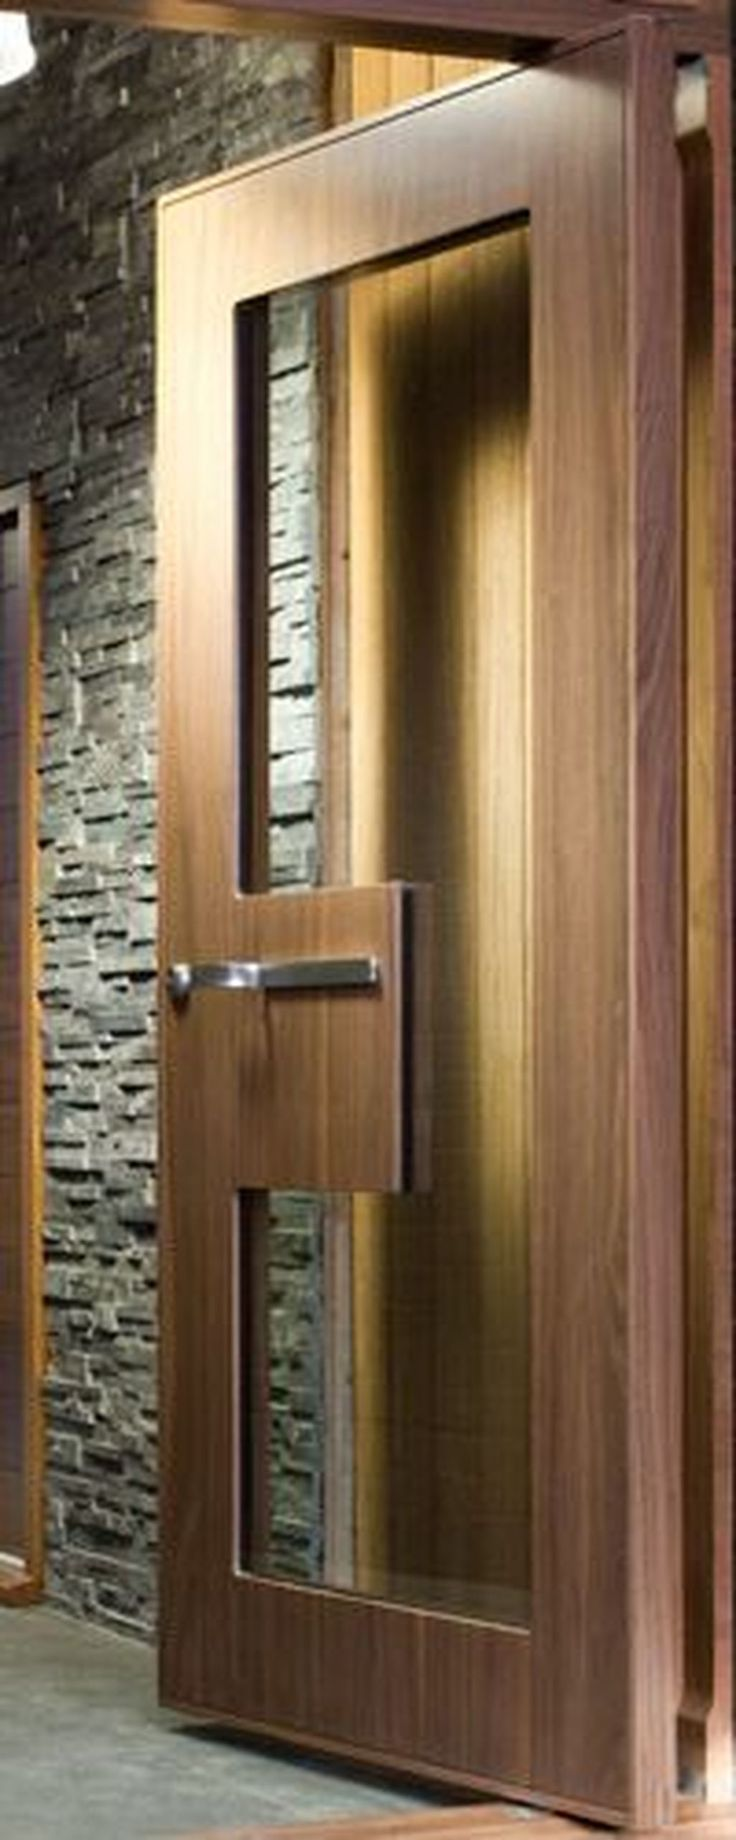 Modern Interior Doors Ideas 14: Awesome 44 Amazing Contemporary Urban Front Doors